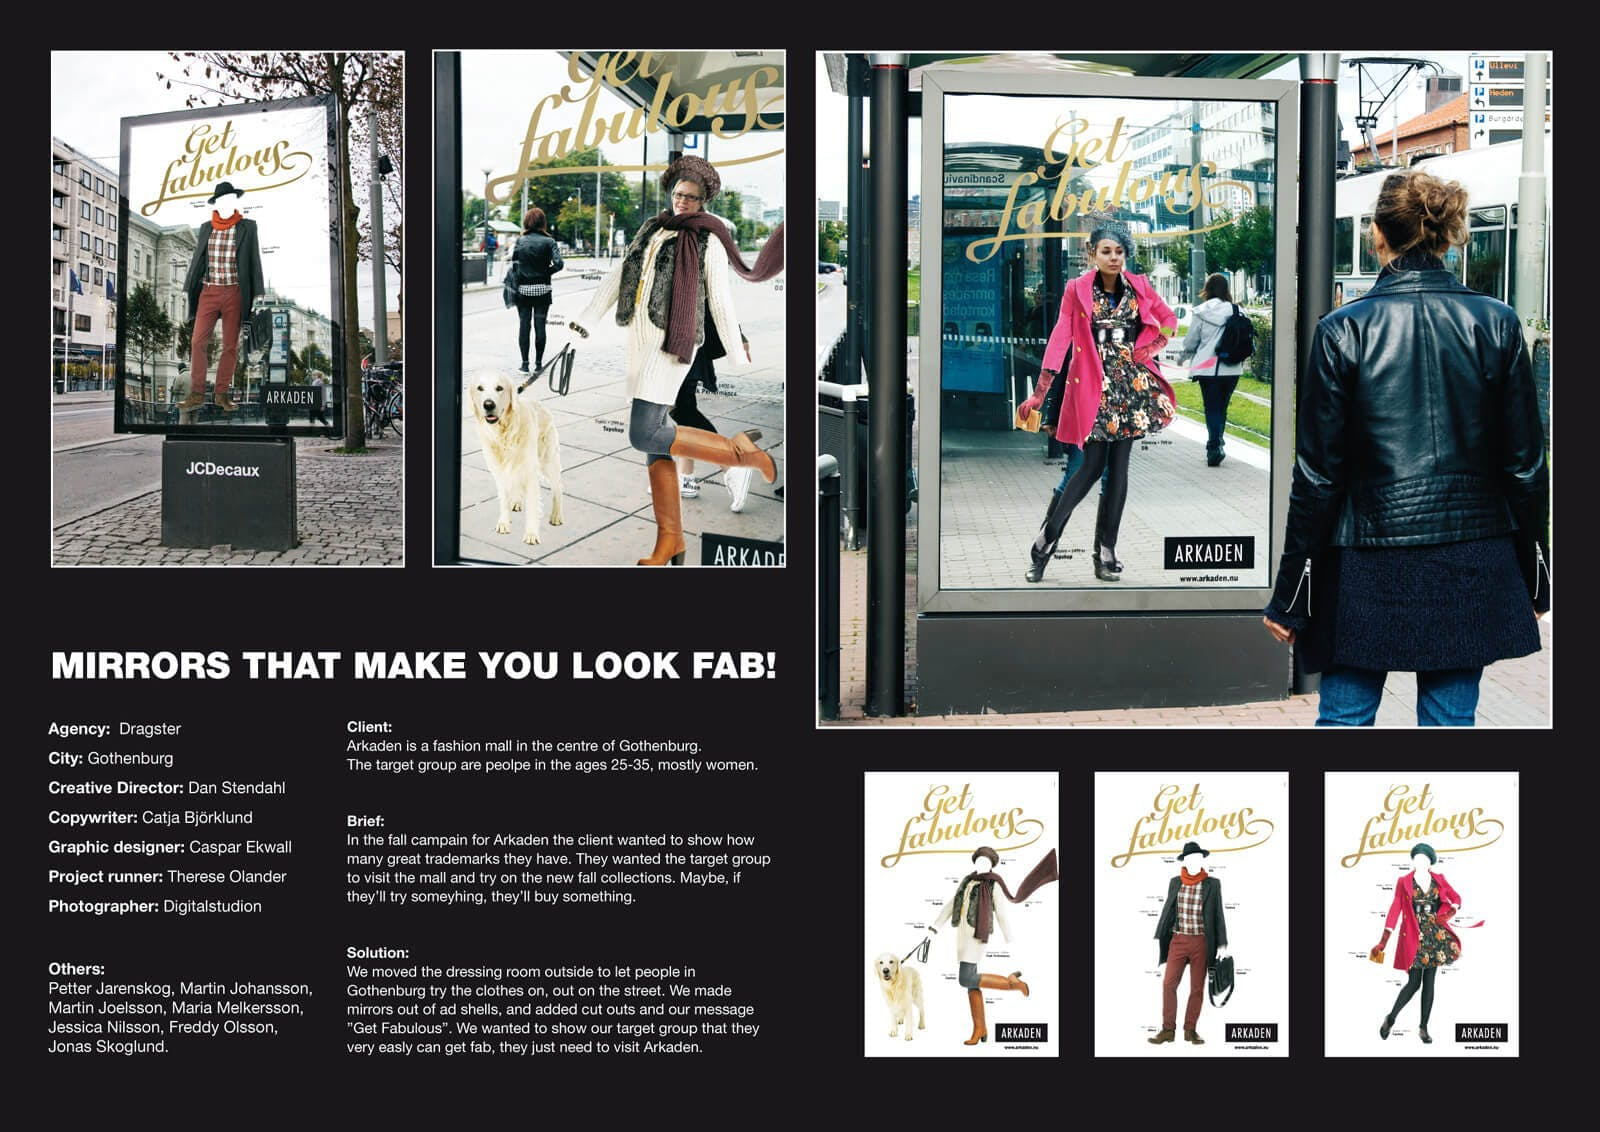 Mirrors that make you look fab - guerrilla campaign of a mall in Gothenburg